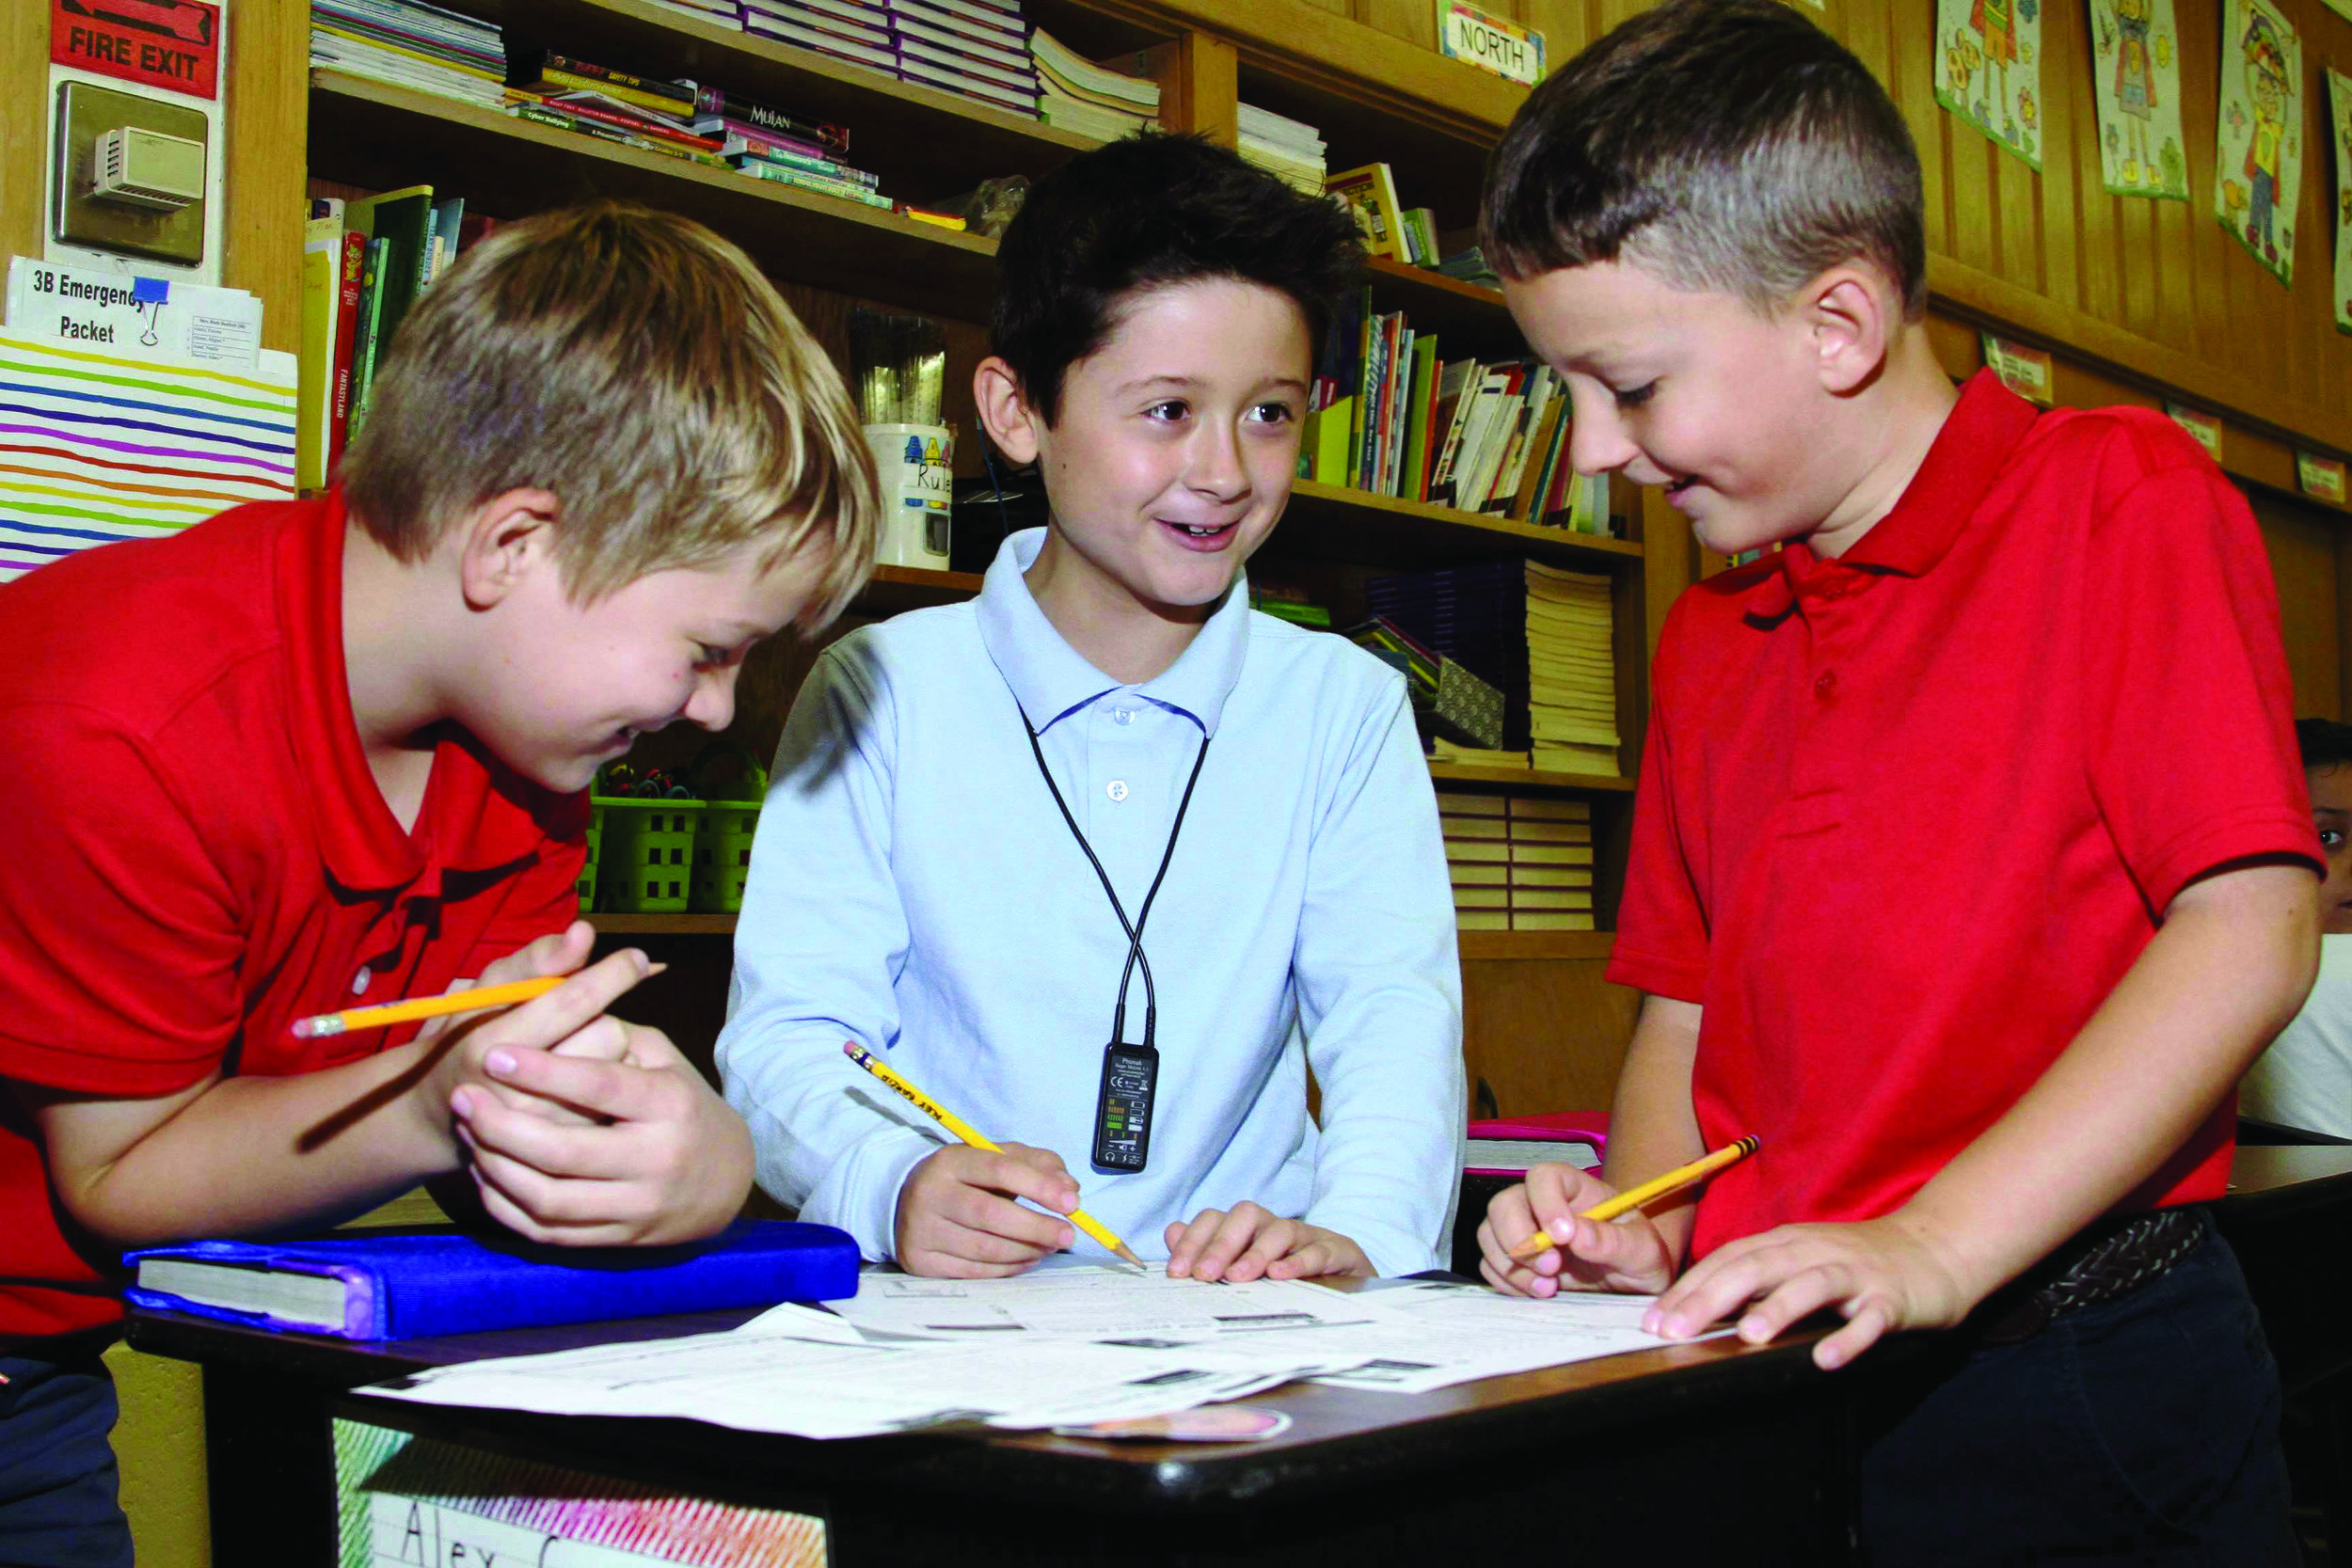 SETON CATHOLIC SCHOOL - For 40 years, Seton Catholic School has proudly served the Illinois Quad Cities in forming students to become productive Catholic adults